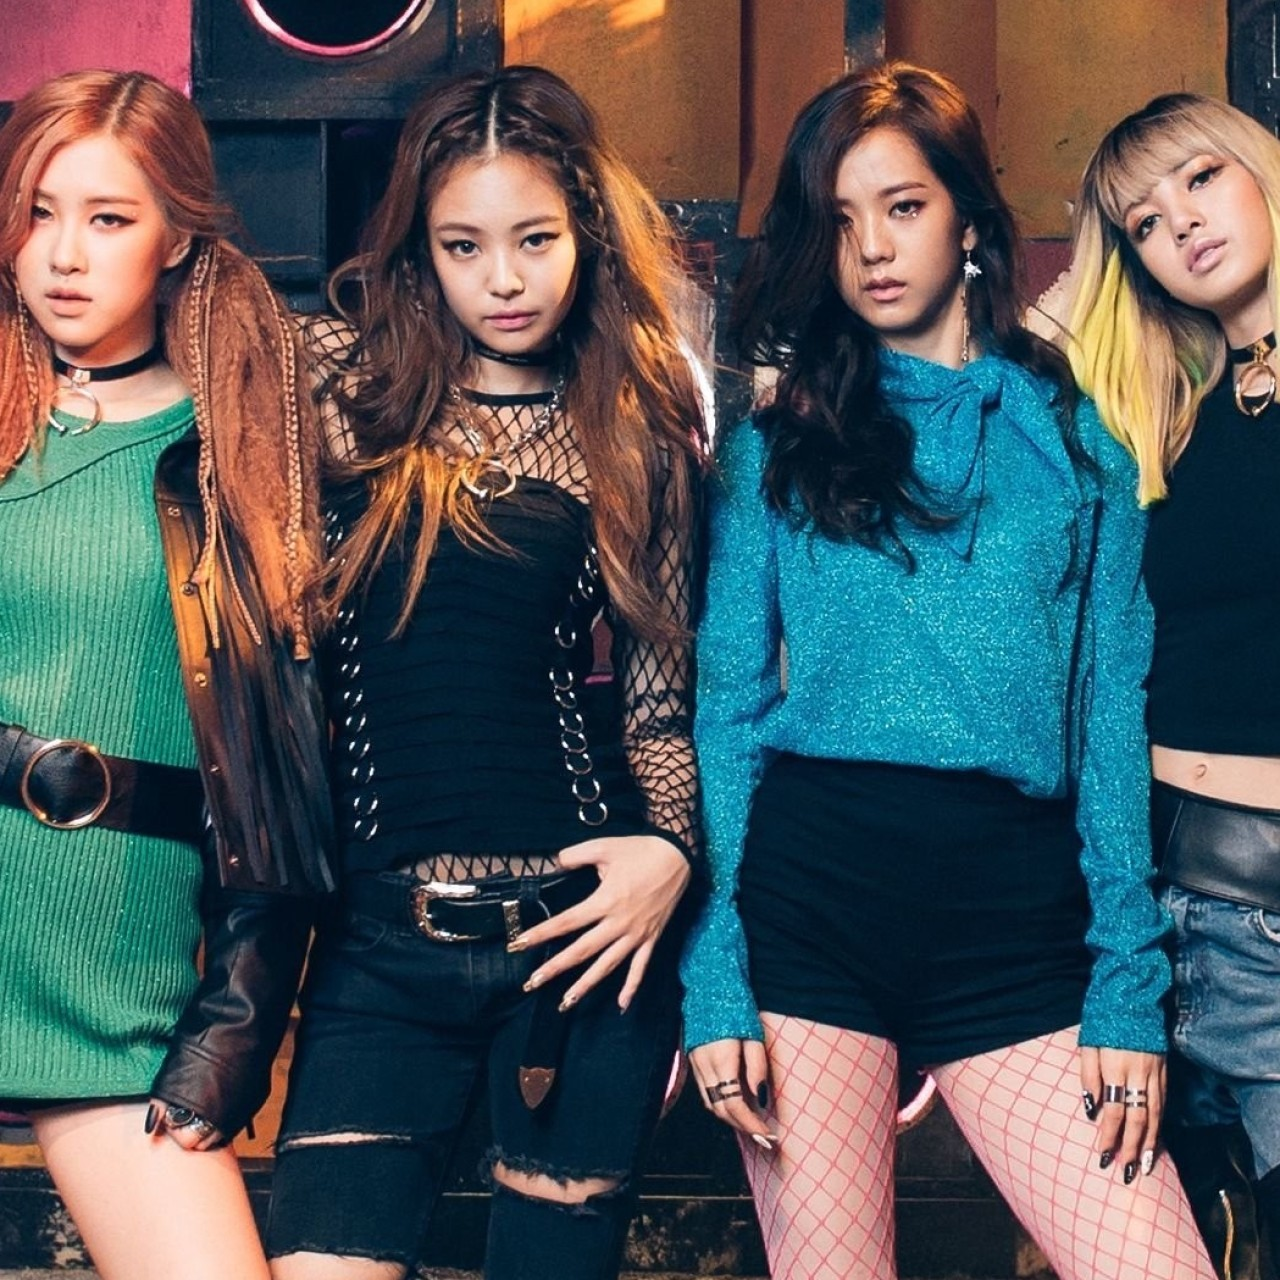 K-pop girl group BLACKPINK's Boombayah passes 600 million